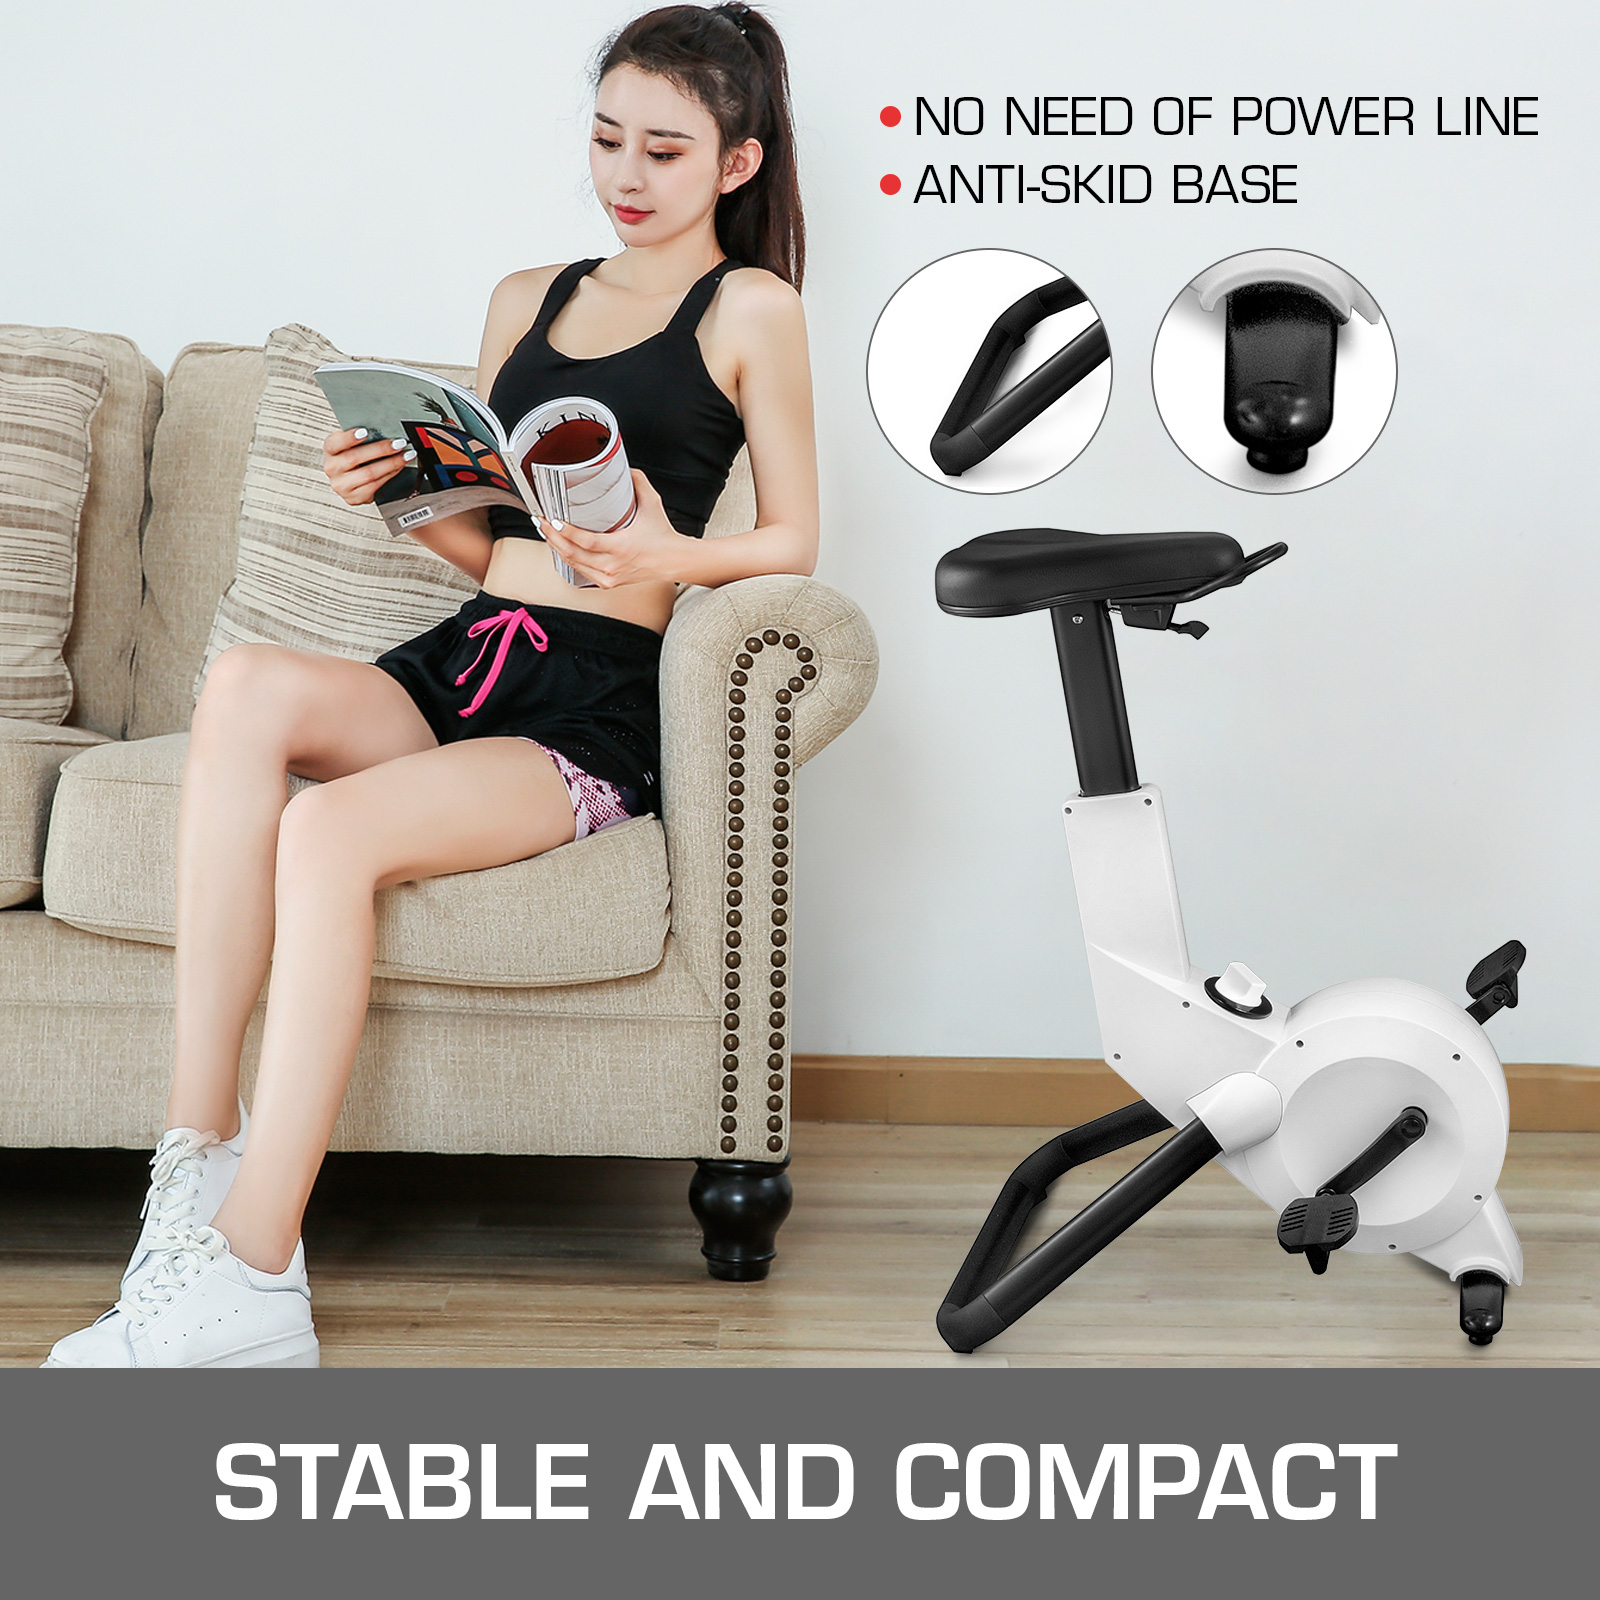 Multi-style-Magnetic-Exercise-Bike-office-Bicycle-under-Desk-Fitness-Cardio miniature 89